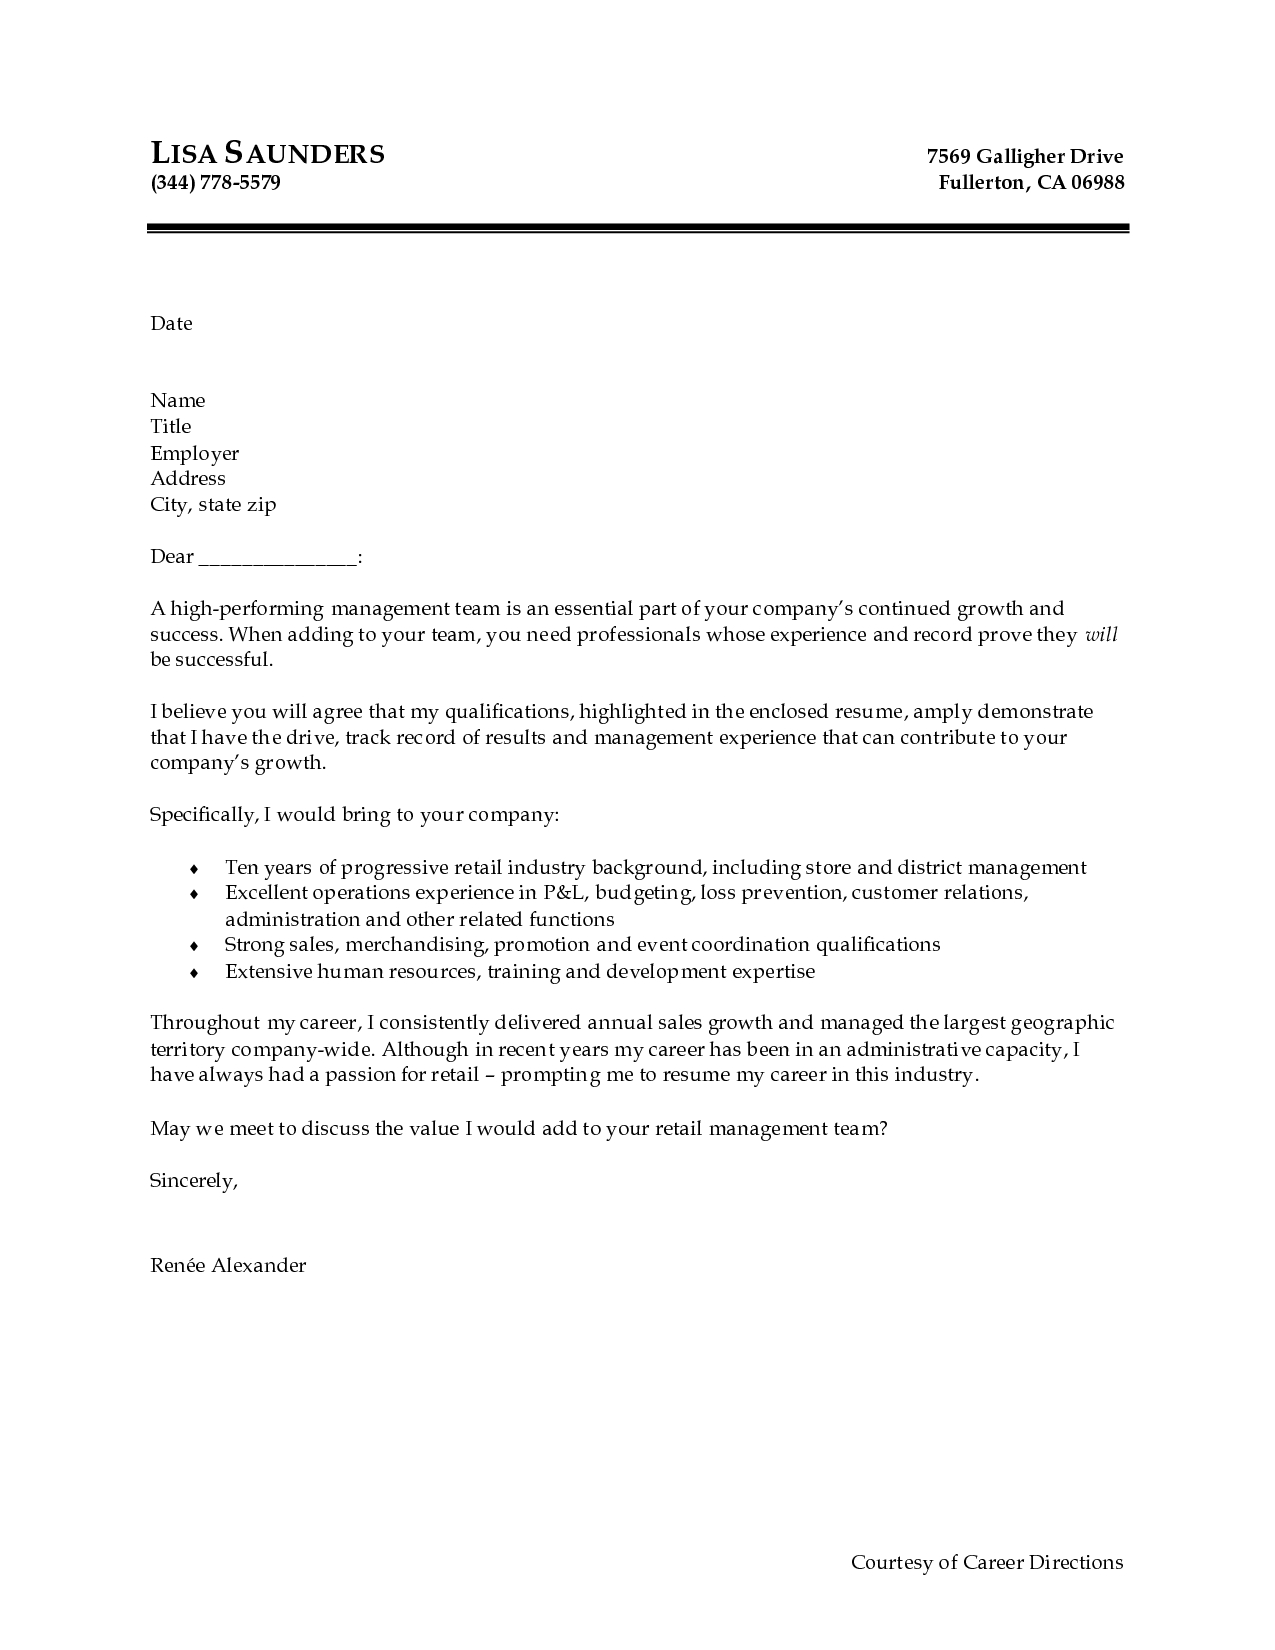 Best Cover Letter Ever Examples Cover Letter Examples  Samples Of Cover Letters For Resume